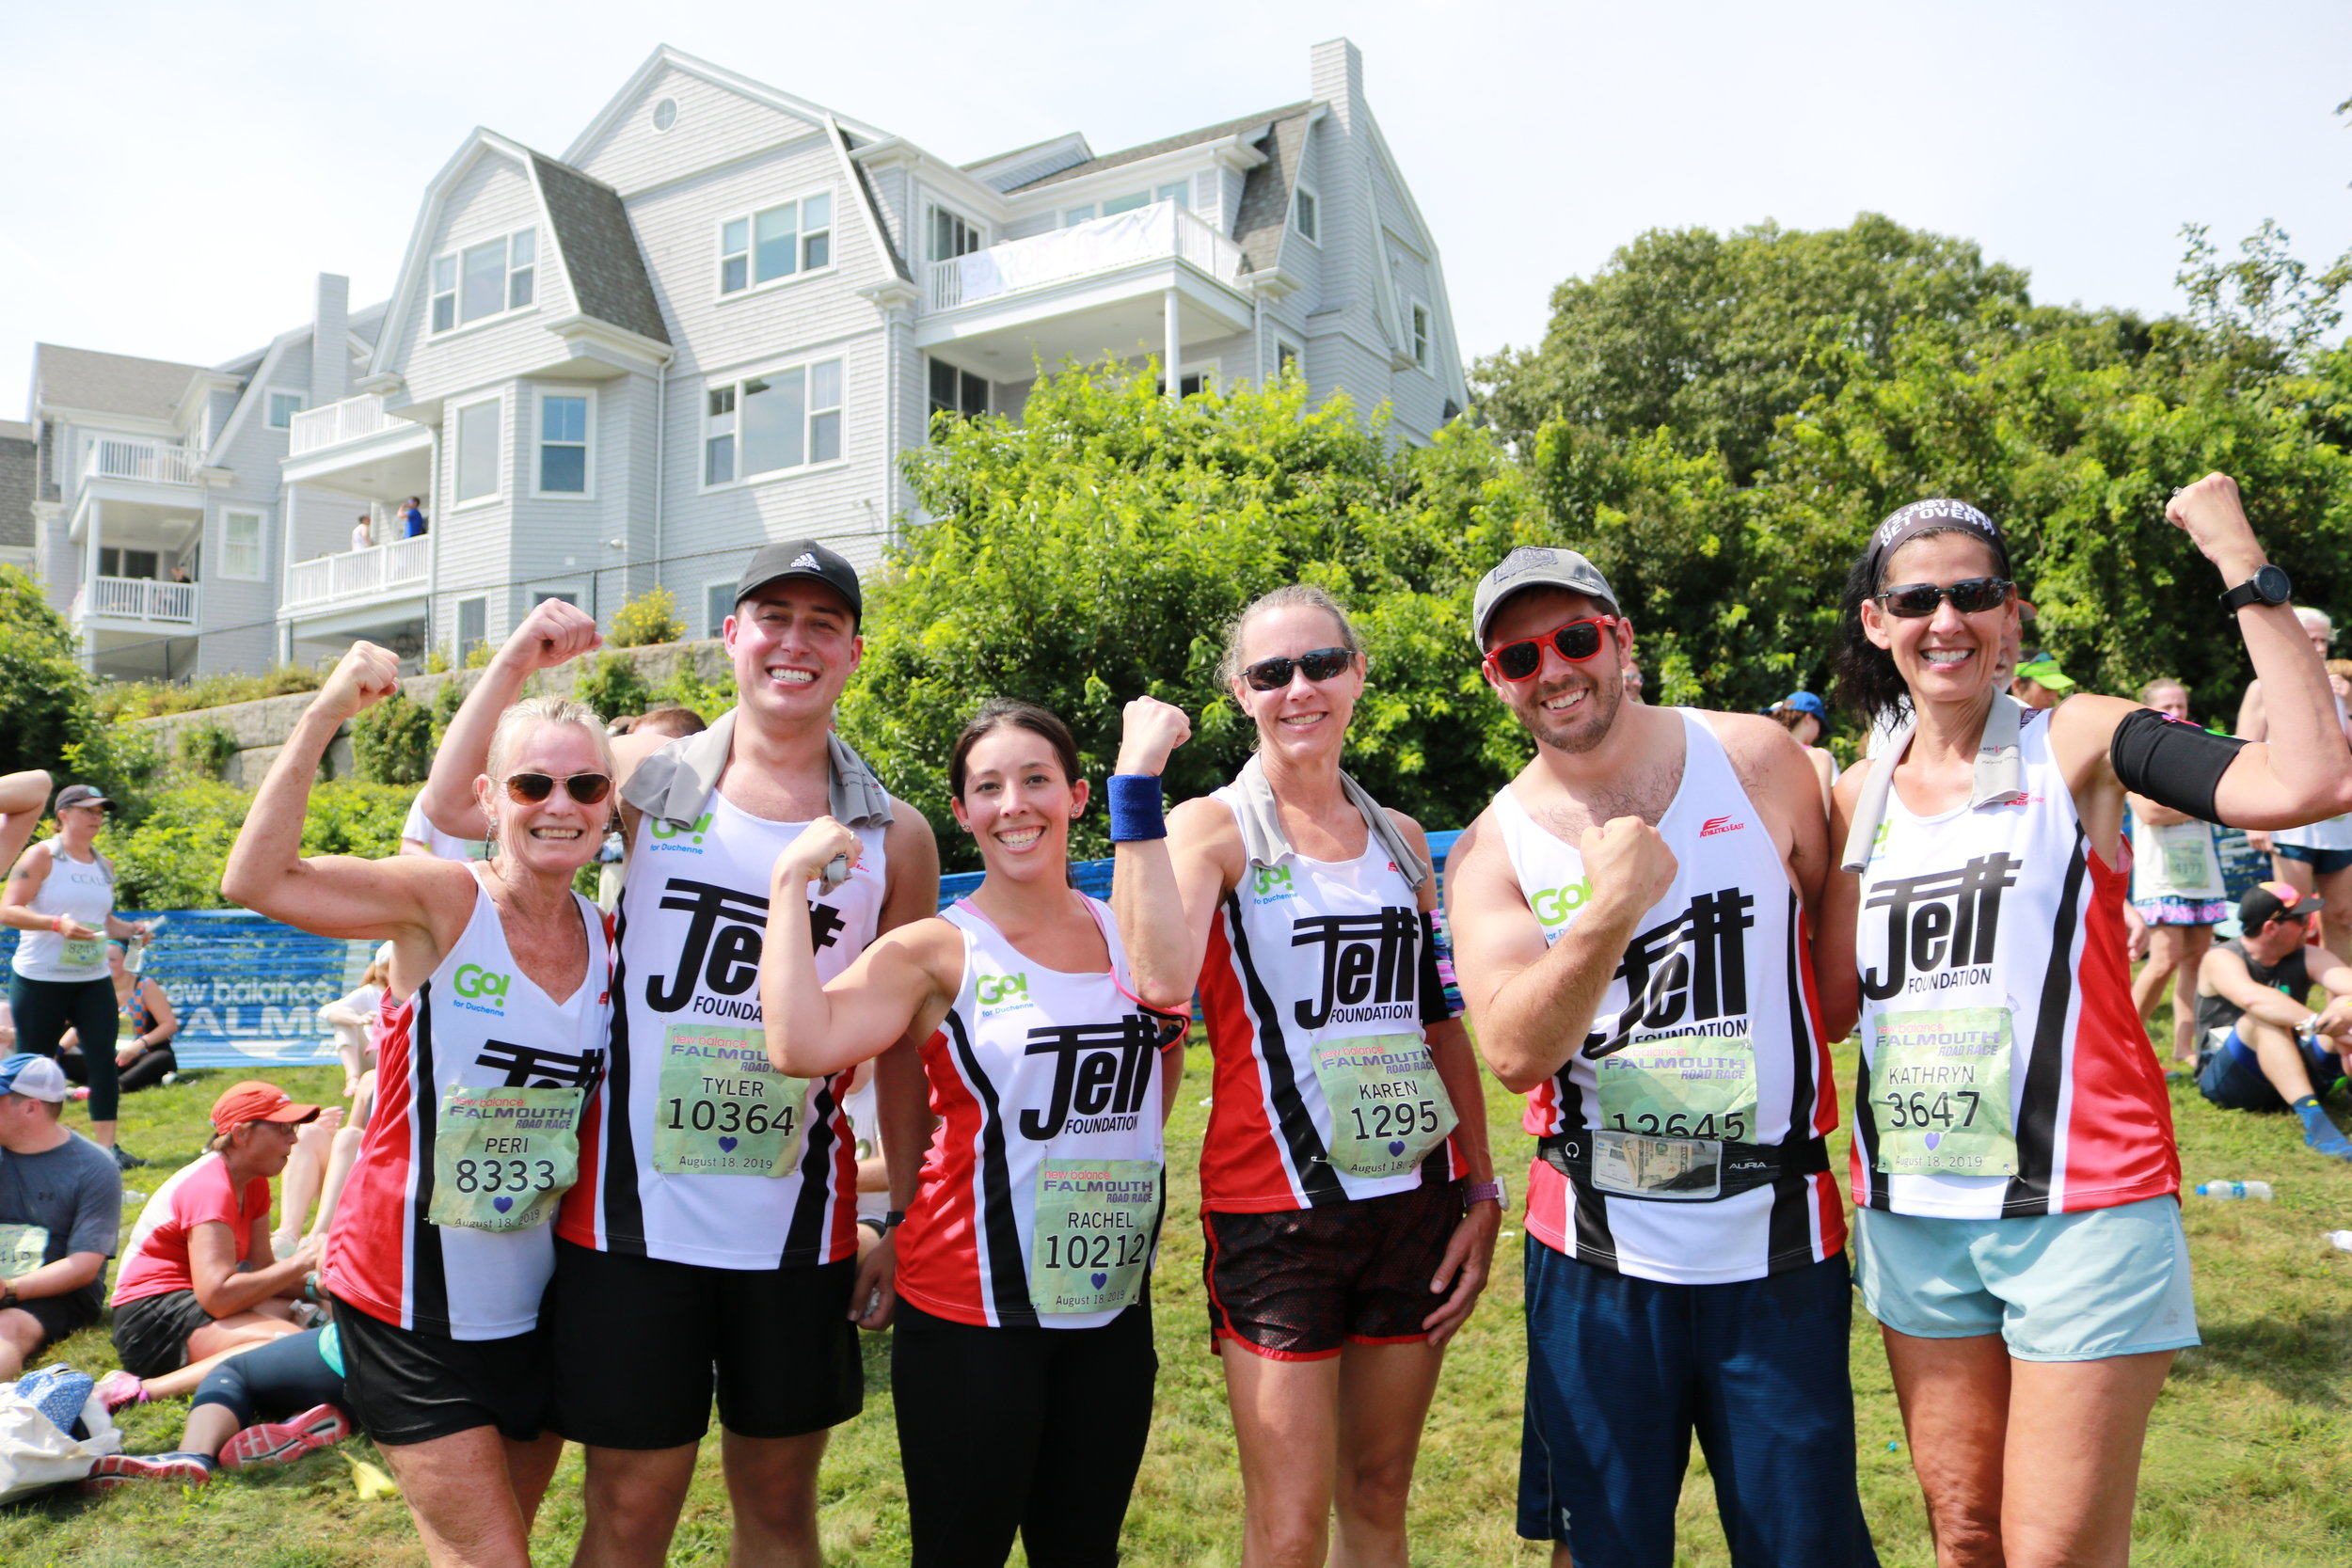 Some of our Go! for Duchenne Falmouth Road Race team members posing after crossing the finish line: (L-R) Peri, Tyler, Rachel, Karen, Brandon, and Kathryn.